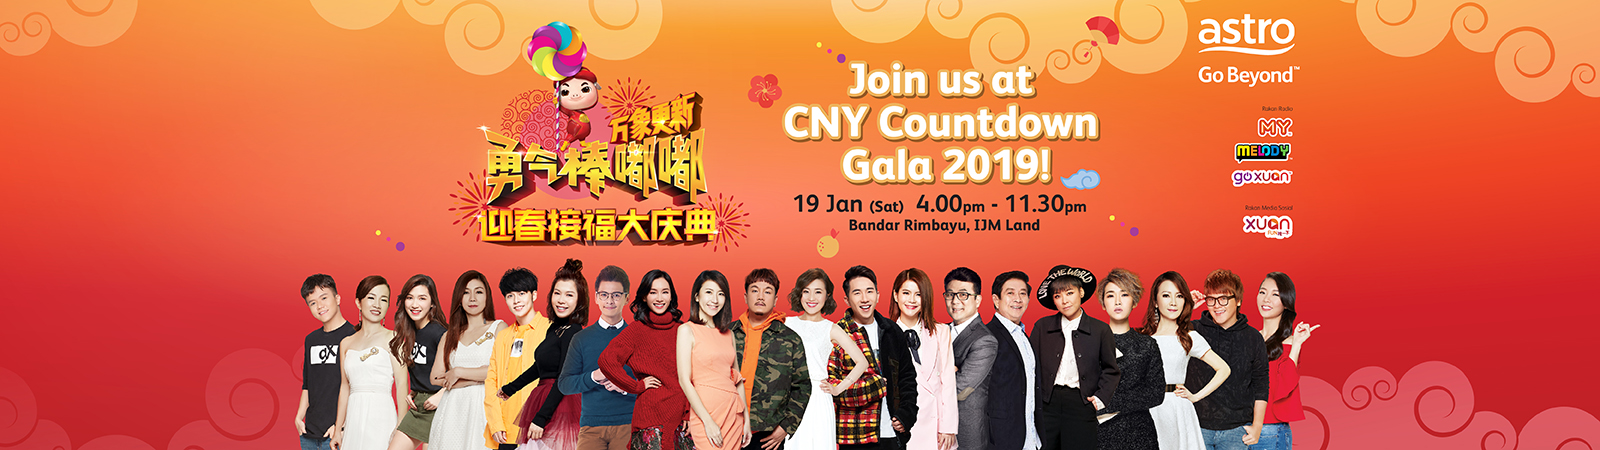 Astro Chinese New Year Countdown Gala 2019! You